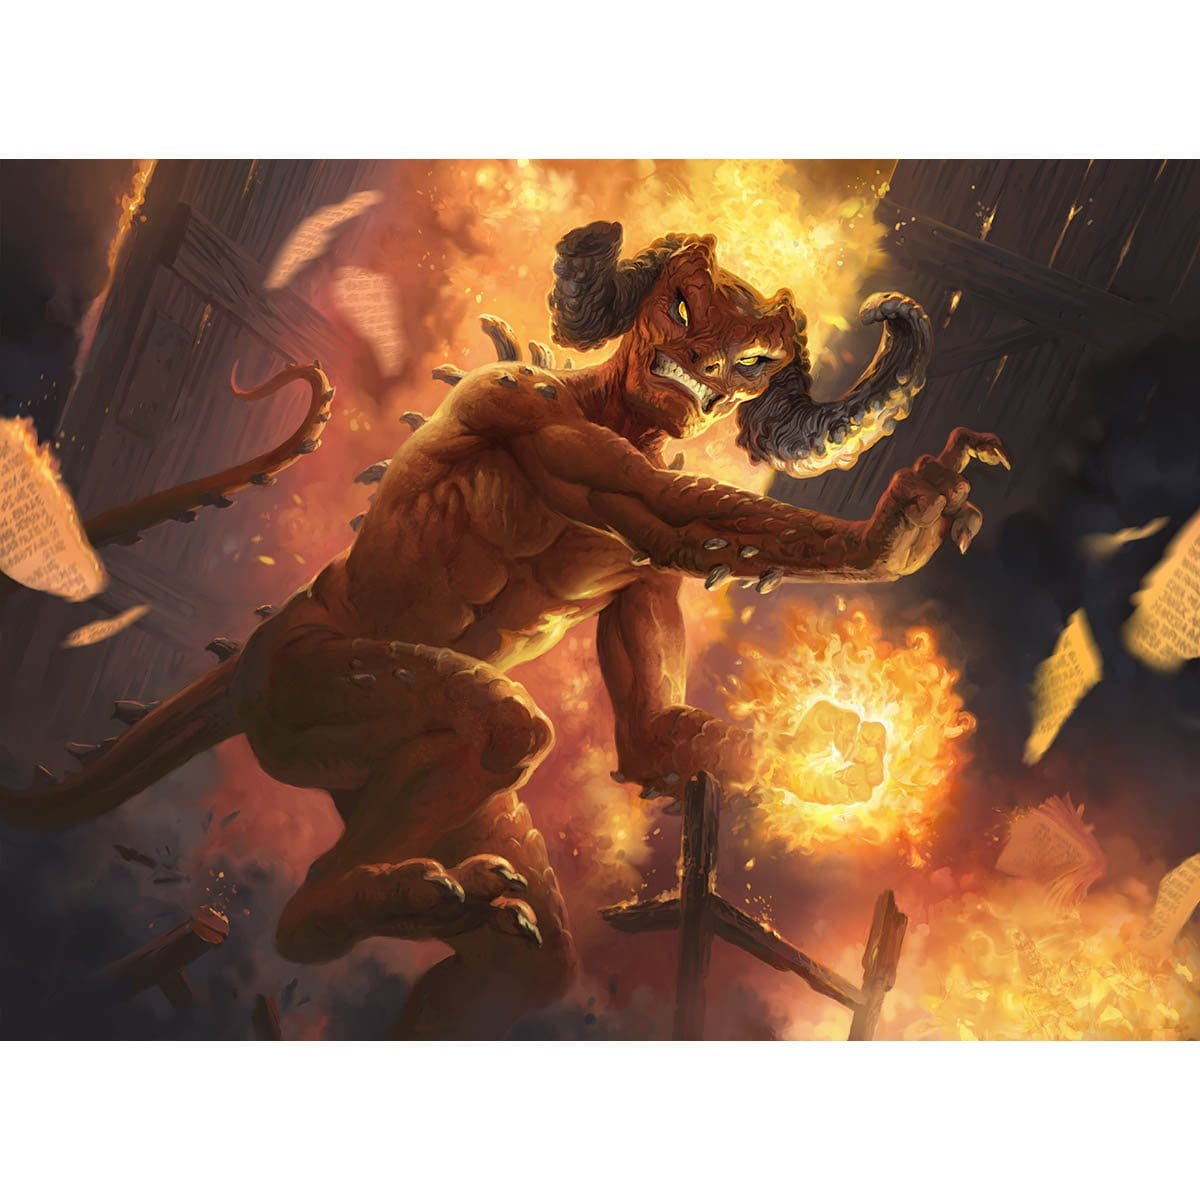 Vengeful Devil Print - Print - Original Magic Art - Accessories for Magic the Gathering and other card games